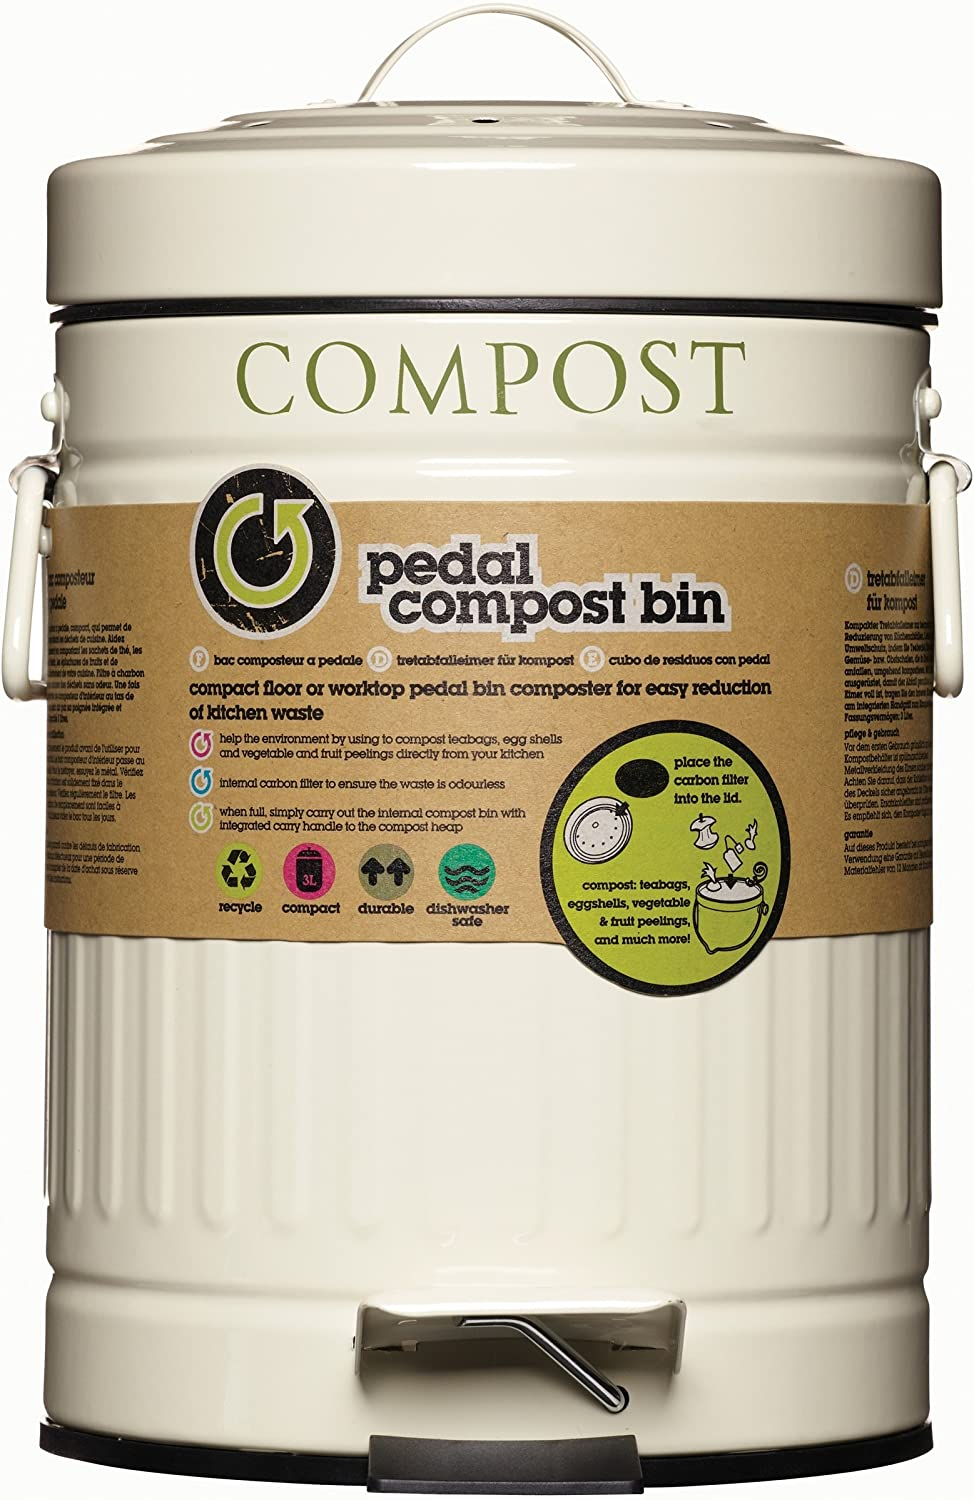 Kitchen Craft Compost Pedal Bin With Carbon Filter - Cream